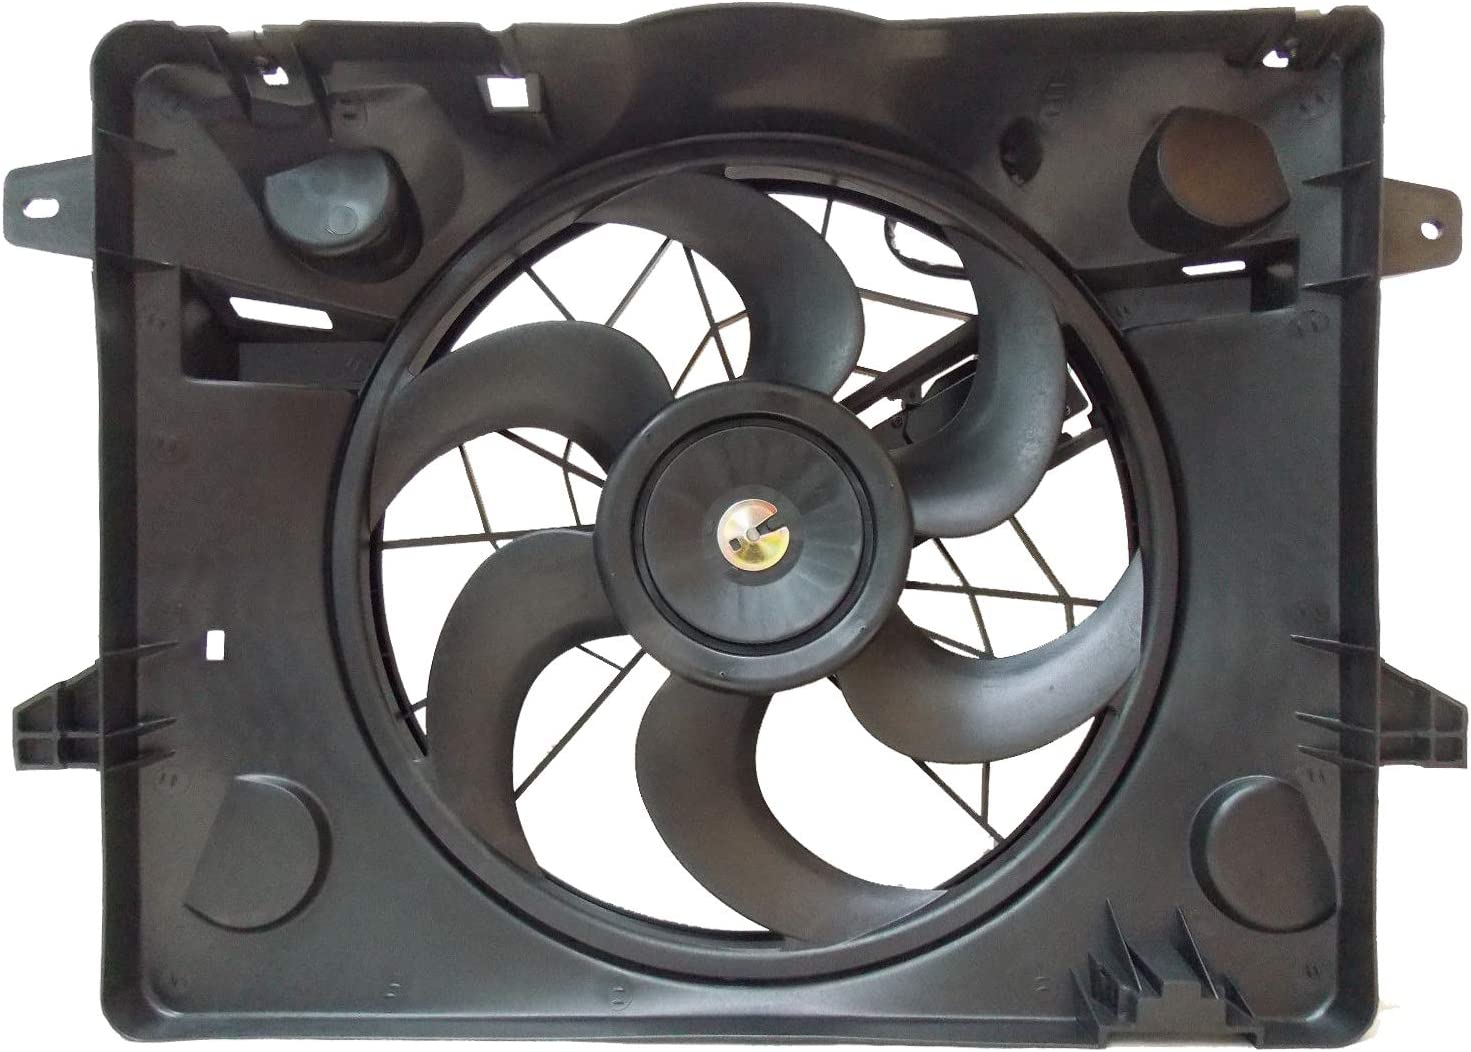 Sunbelt Radiator And Condenser Fan For Ford Crown Victoria Lincoln Town Car FO3115149 Drop in Fitment